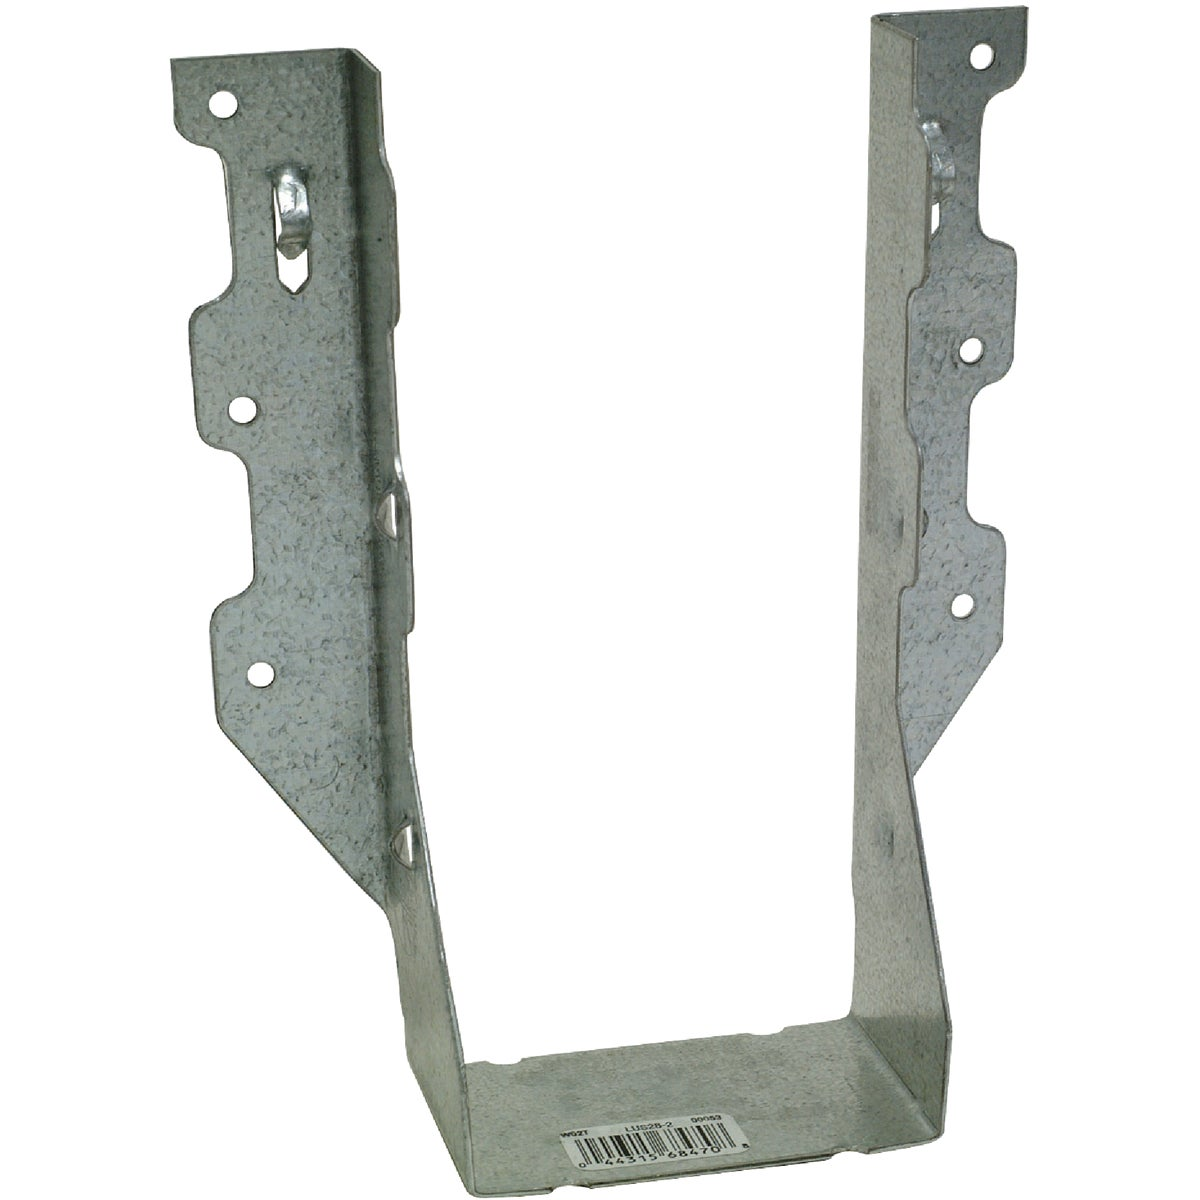 2X8 DOUBLE JOIST HANGER - LUS28-2 by Simpson Strong Tie